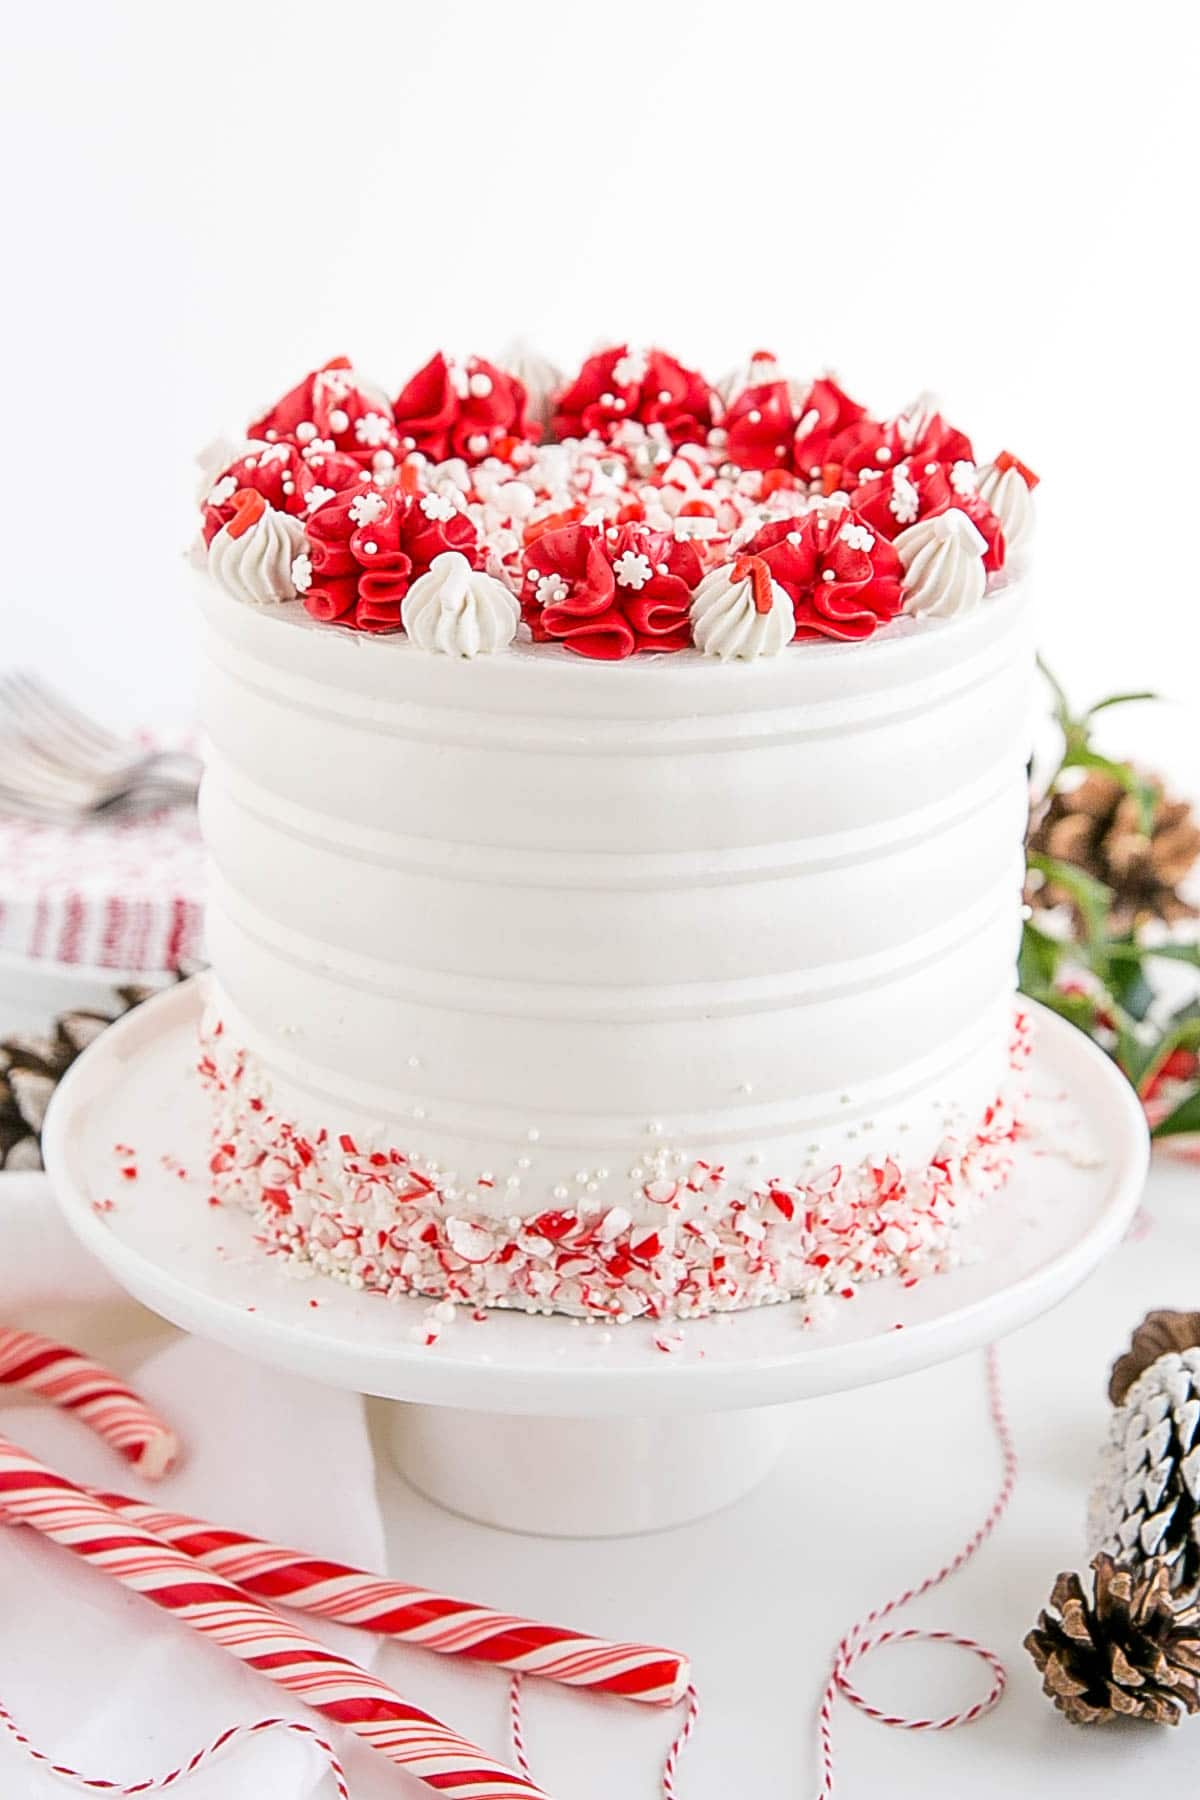 Angled shot of the cake with candy canes and pine cones as props.